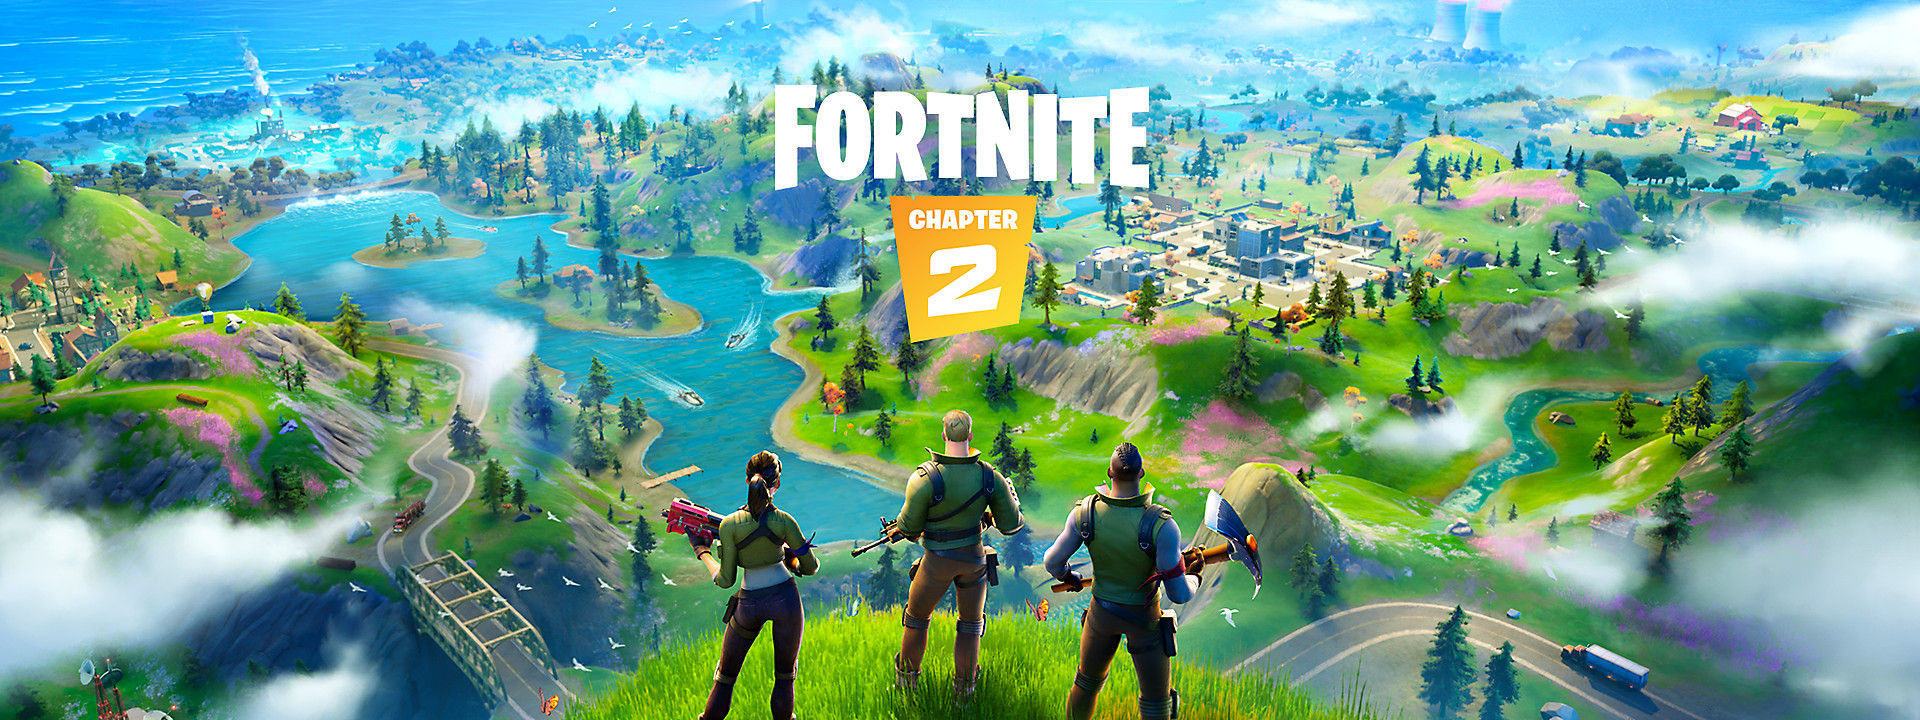 Fortnite Chapter 2 - Available Now